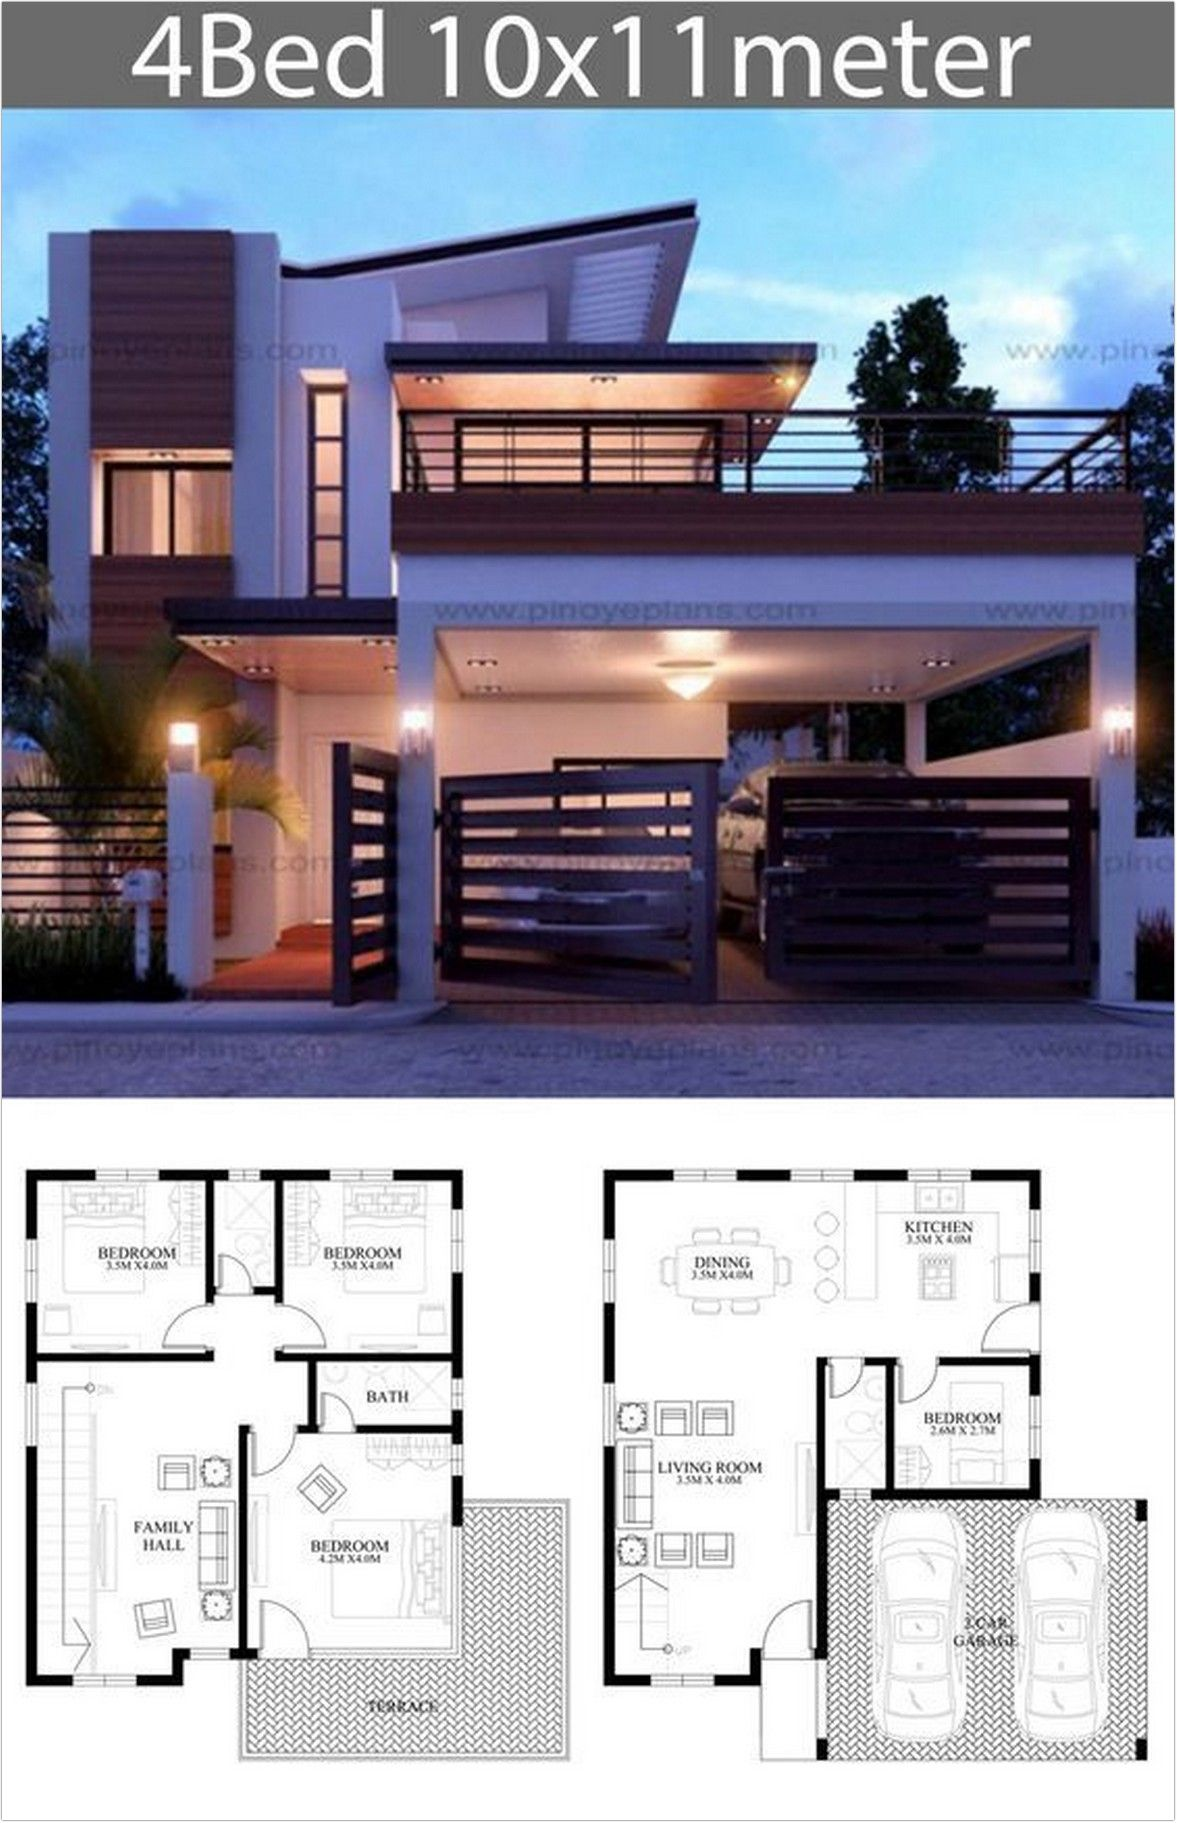 25 Special Edition Modern House Design For Your 2020 Architectural Inspiration 10 Dreamsscape Bungalow House Design Duplex House Design Modern House Plans